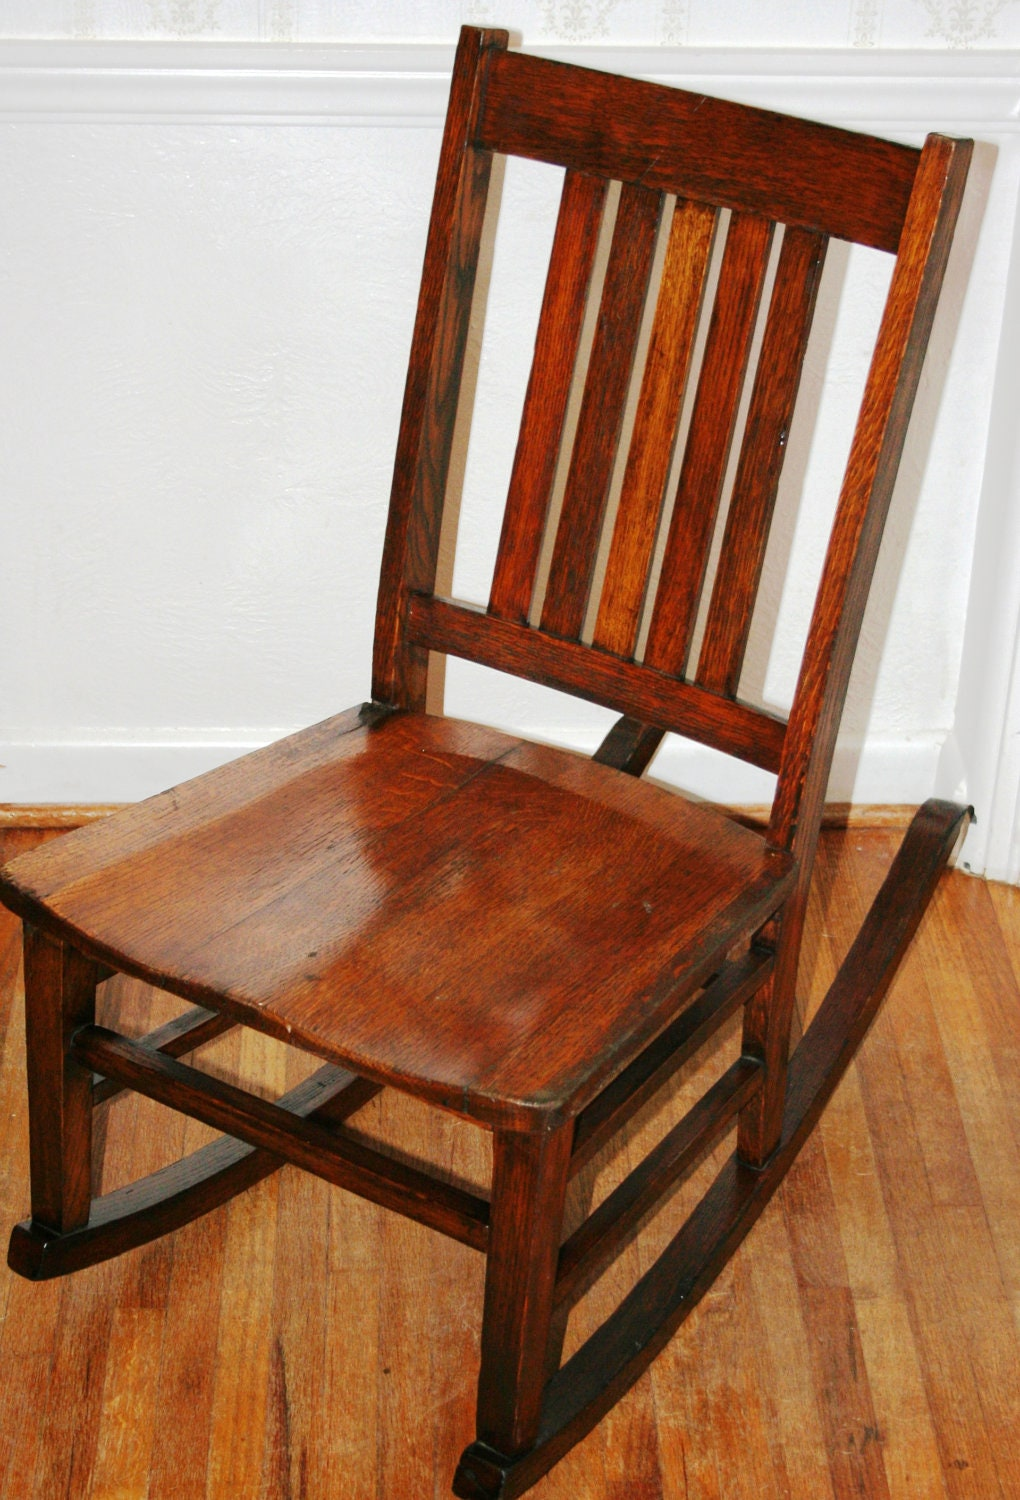 Antique chair back styles antique chair back styles http www - Antique Rocker Craftsman Mission Style Early American Ladies